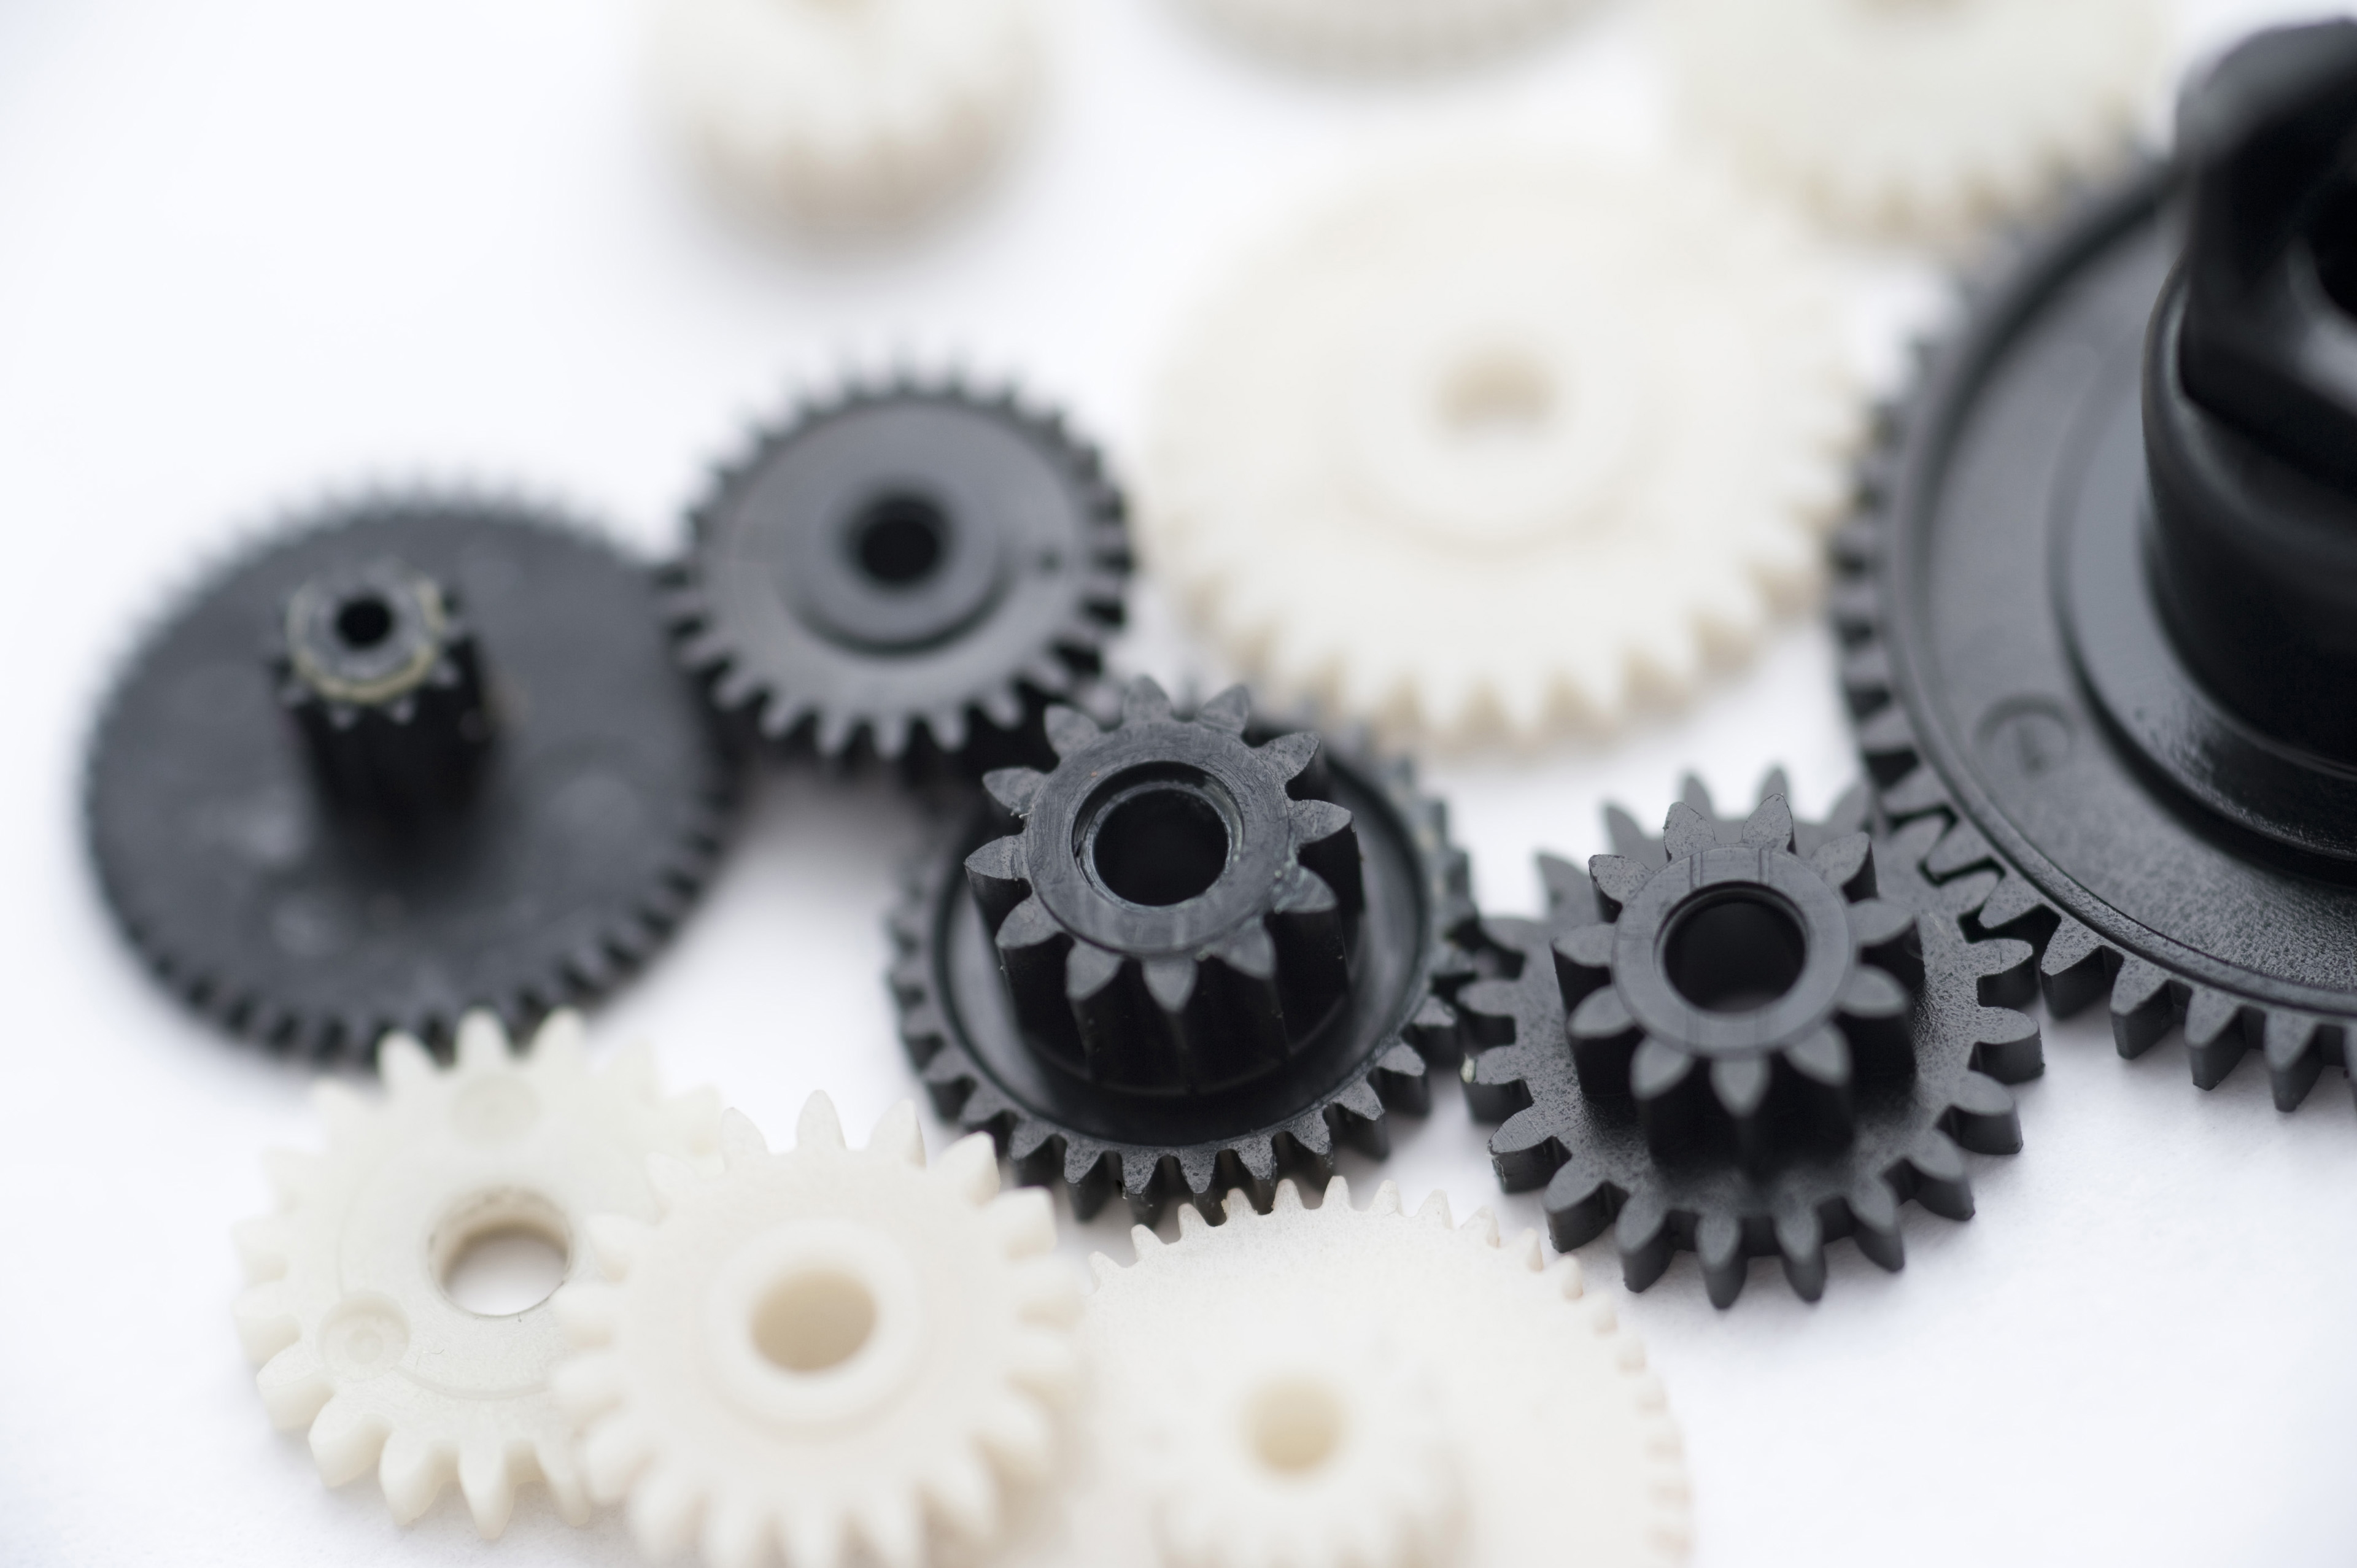 Close Up of Various Sized Black and White Plastic Gears on White Background, Business Teamwork Concept Image